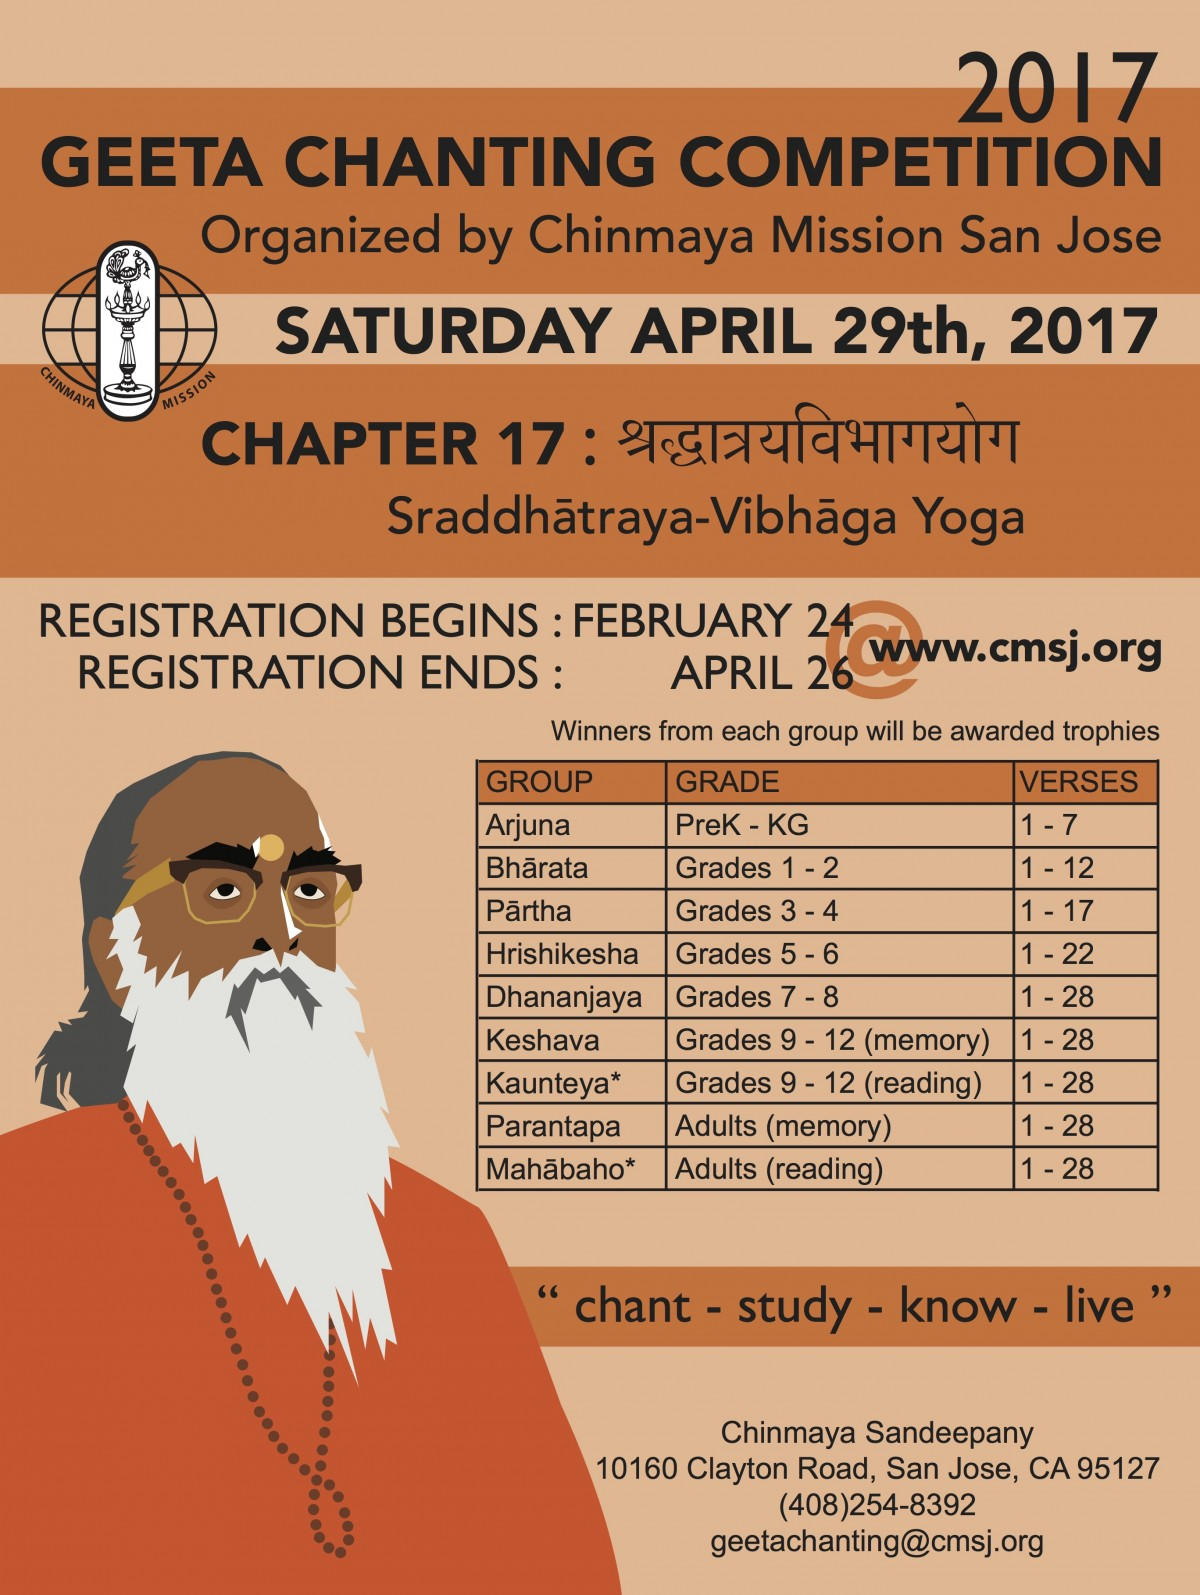 Geeta Chanting Competition 2017